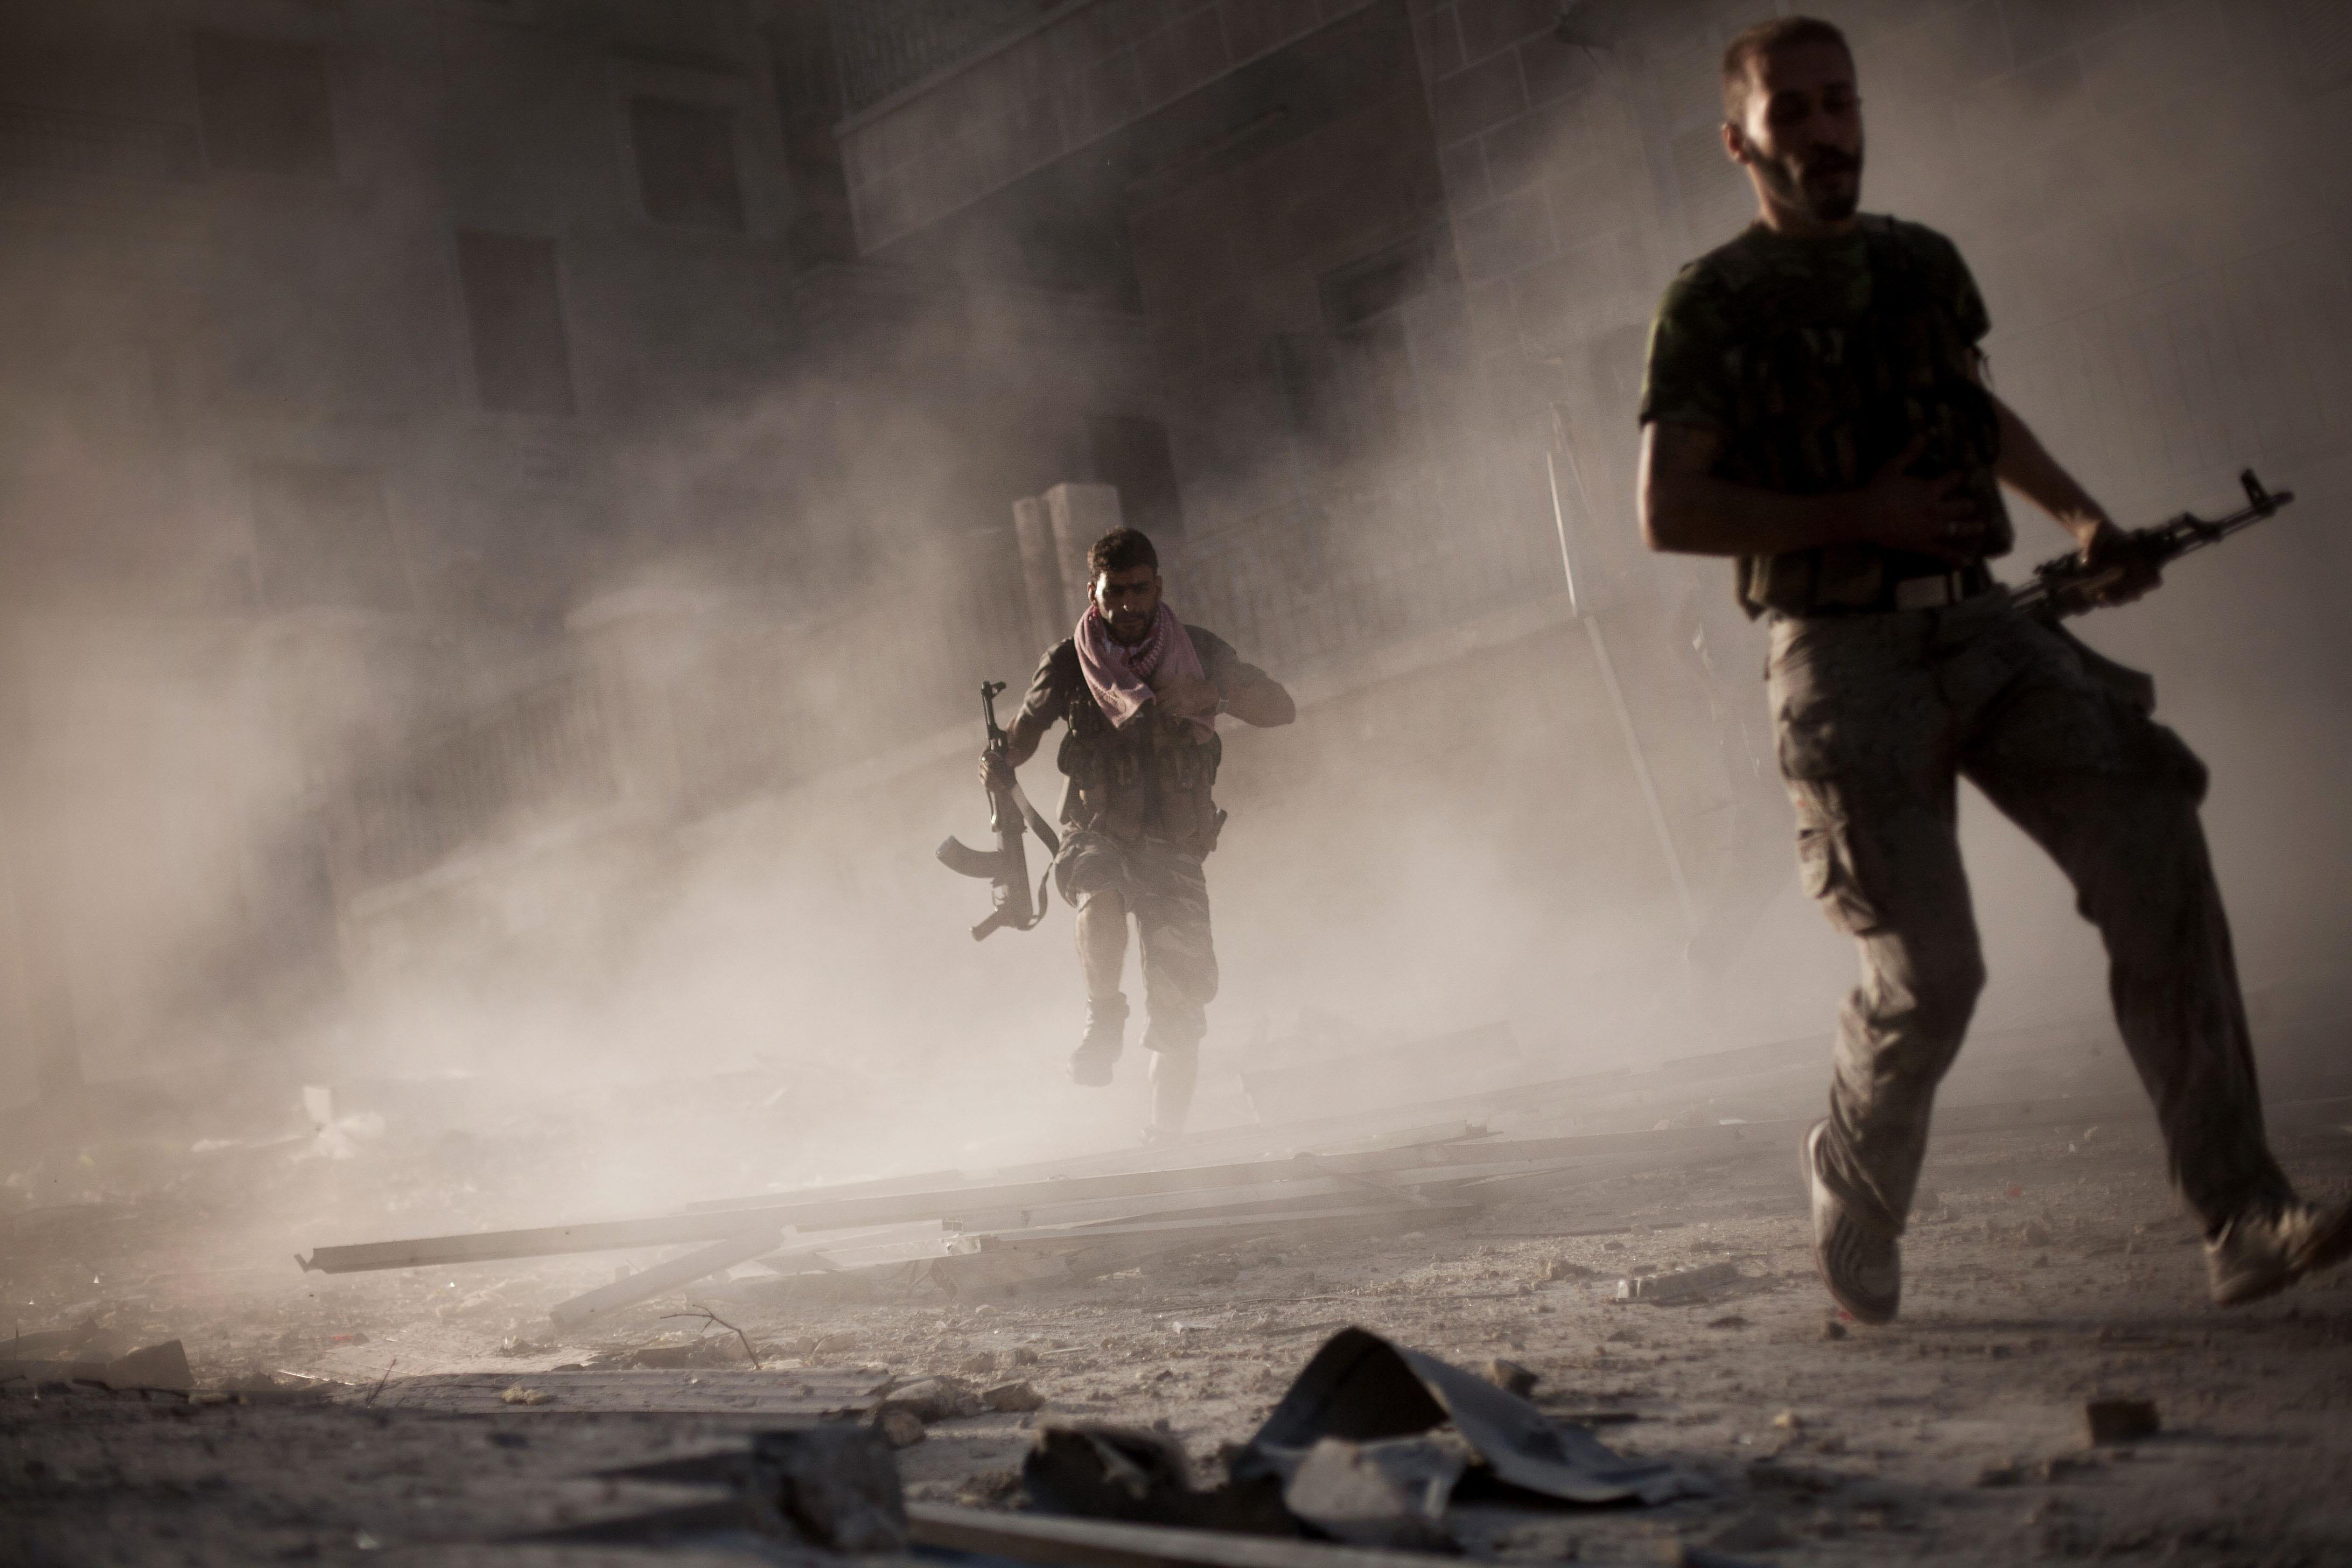 In this Friday, Sept 7, 2012 photo, Free Syrian Army fighters run after attacking a Syrian Army tank during fighting in the Izaa district in Aleppo, Syria. On Friday, U.S. Senators John McCain, Joe Lieberman and Lindsay Graham, who have toured the volatile Middle East in recent days, urged Washington to help arm Syria's rebels with weapons and create a safe zone inside the country for a transition government. (AP Photo/ Manu Brabo)